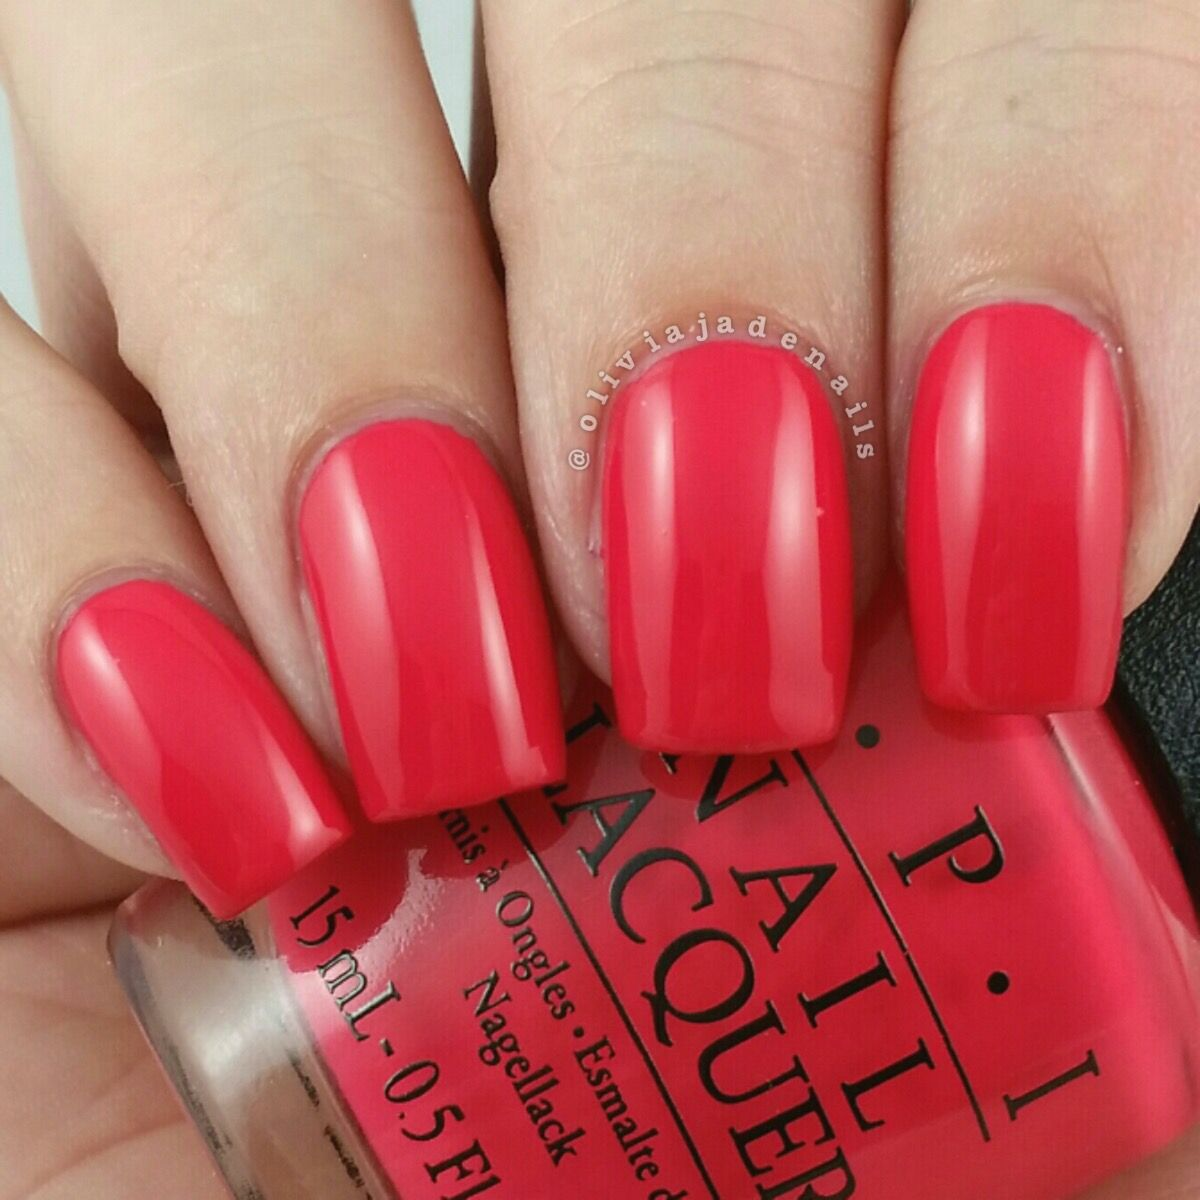 OPI Sheu0027s A Bad Muffuletta! Is A Hot Red Creme (with A Slight Coral